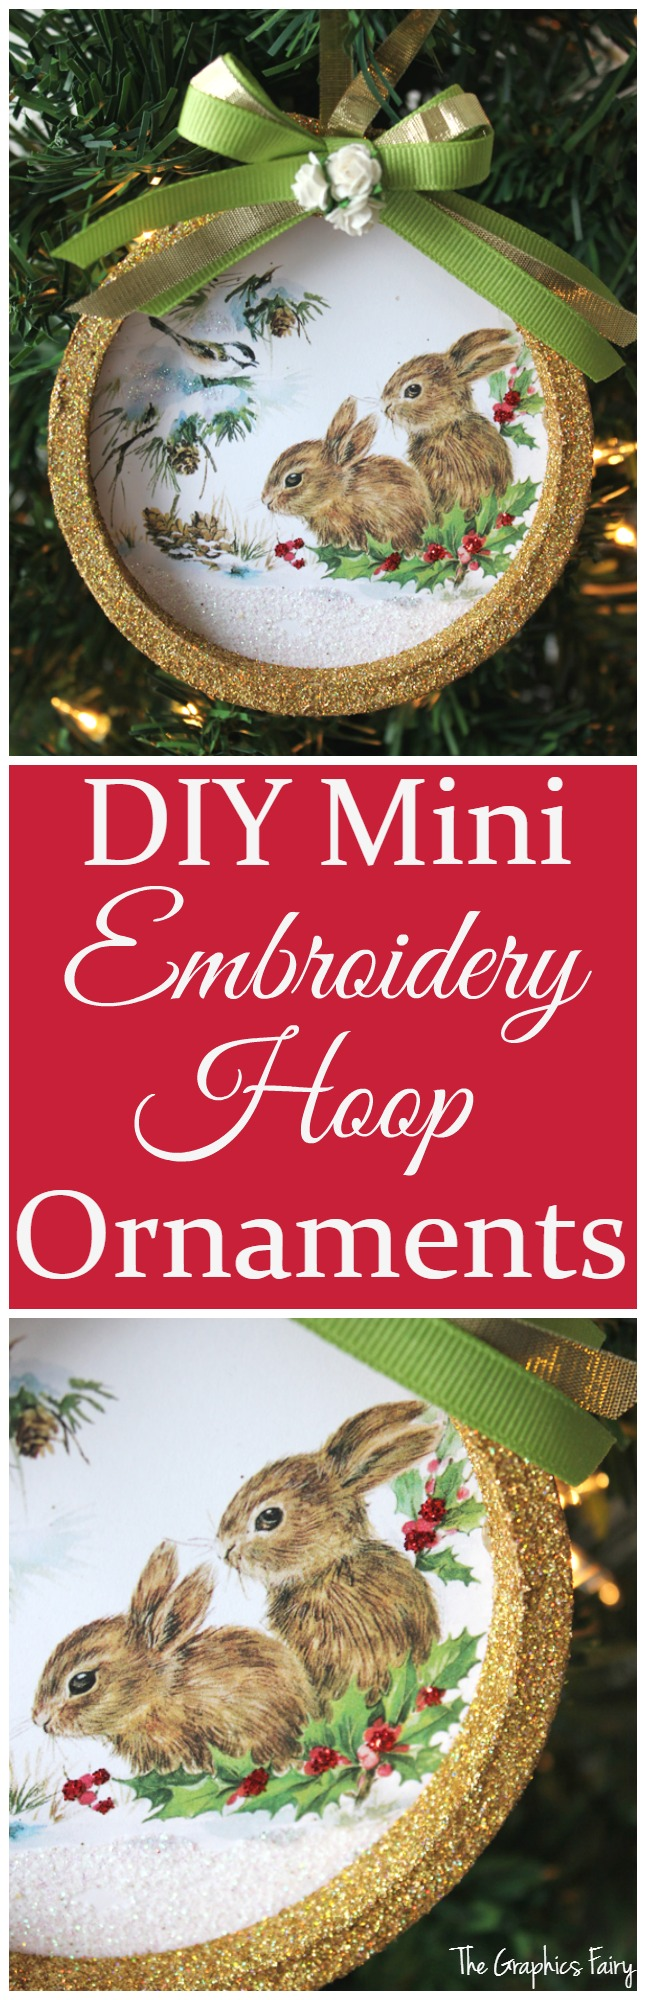 DIY mini Embroidery Hoop Ornaments - The Graphics Fairy